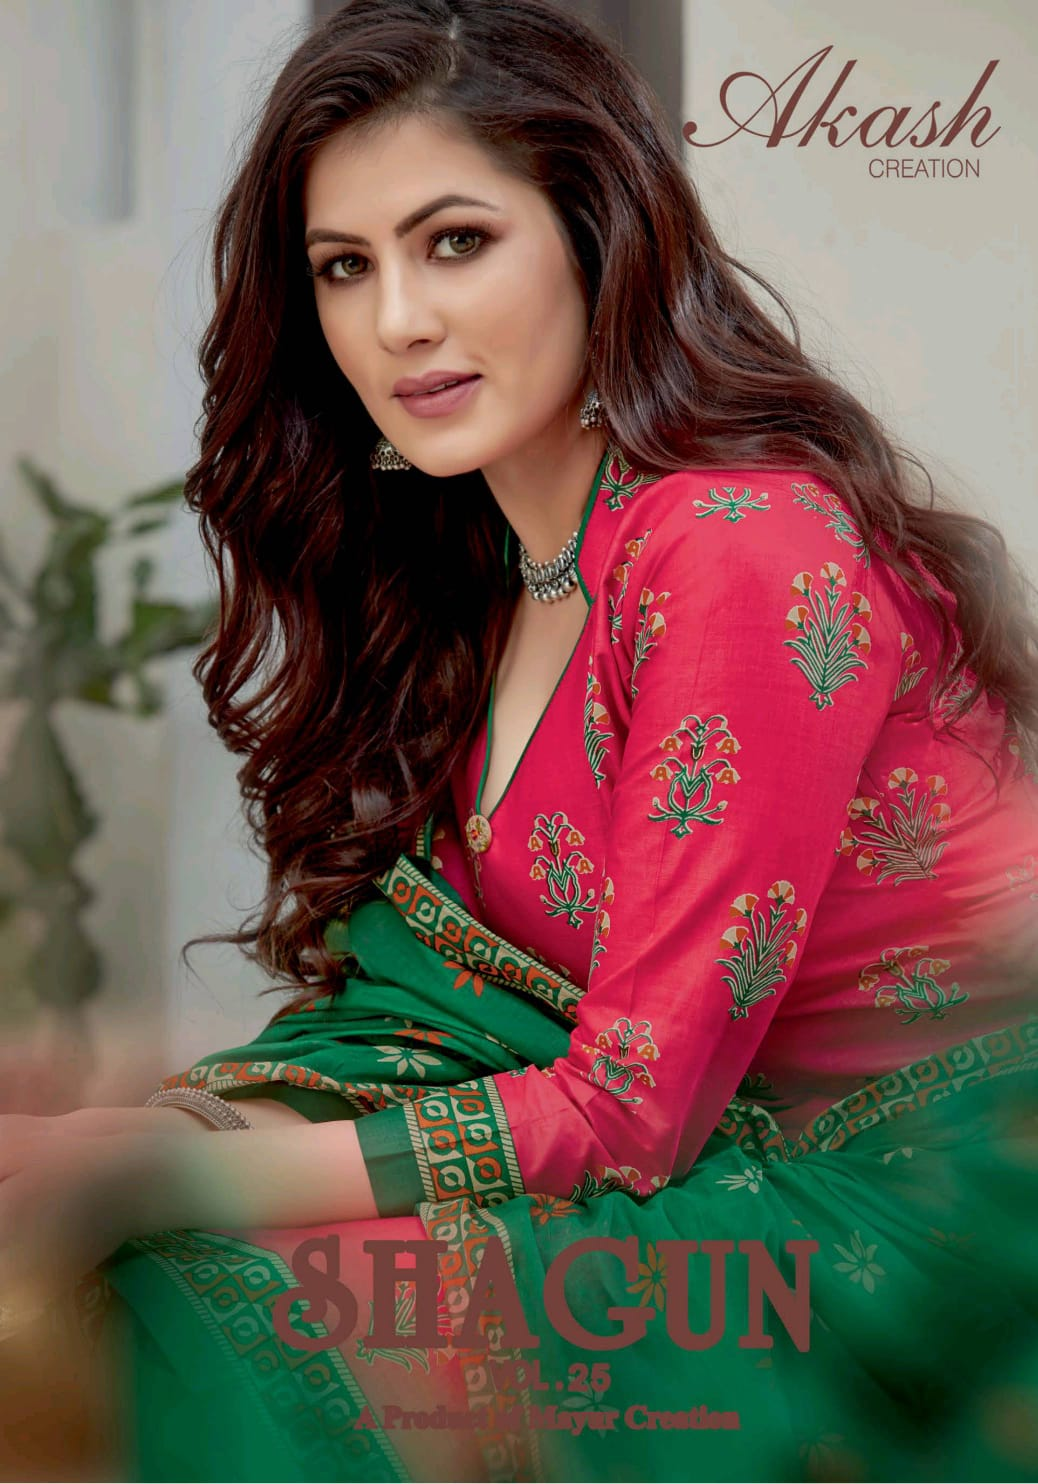 Akash Creation Presents Shagun Vol 25 Cotton Daily Wear Dress Materials At Lowest Rate